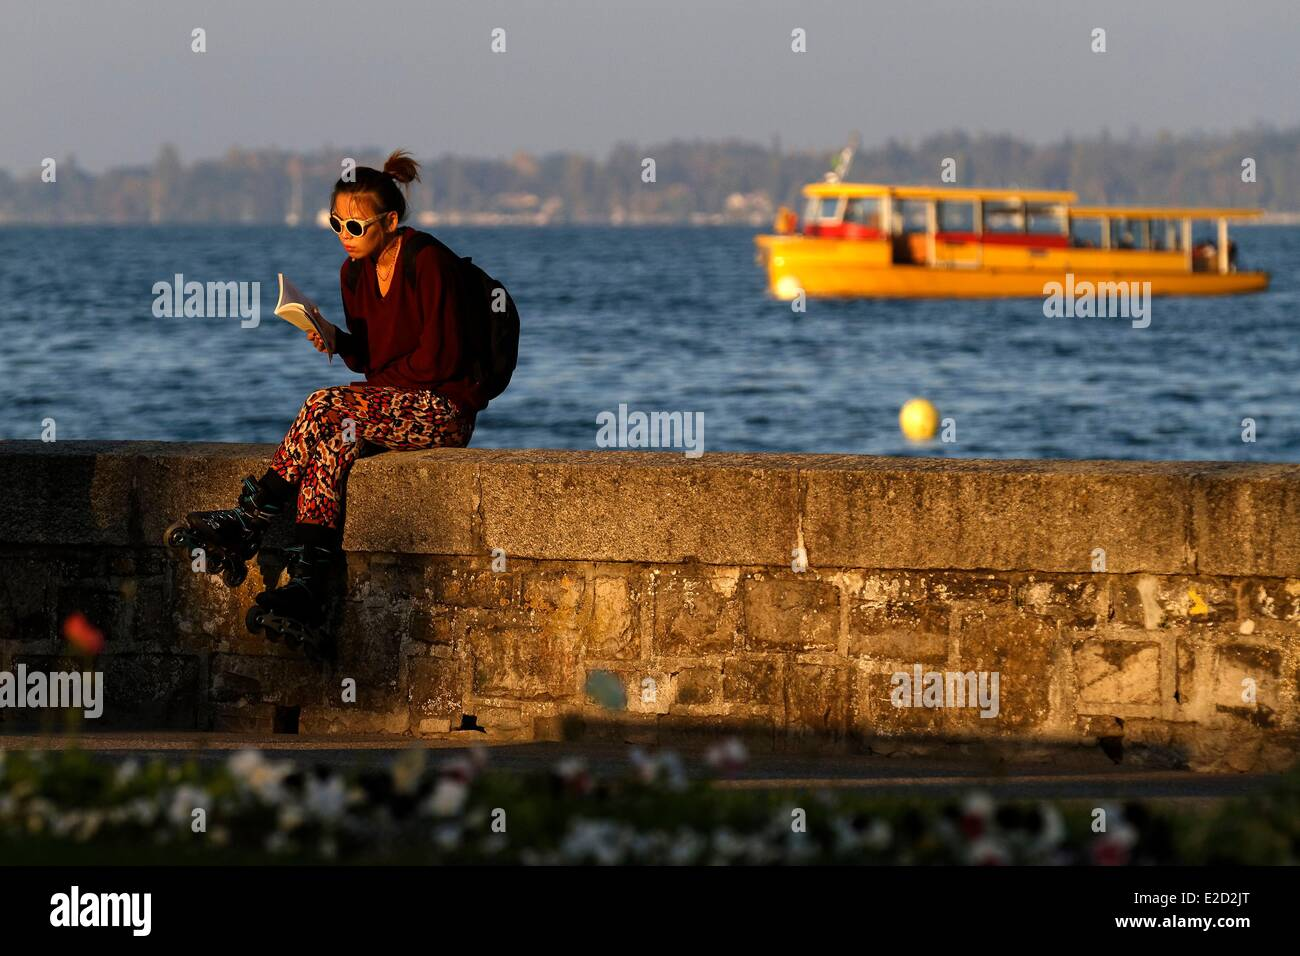 Switzerland Geneva Lake Geneva Parc Mon Repos young woman reading on the bank - Stock Image